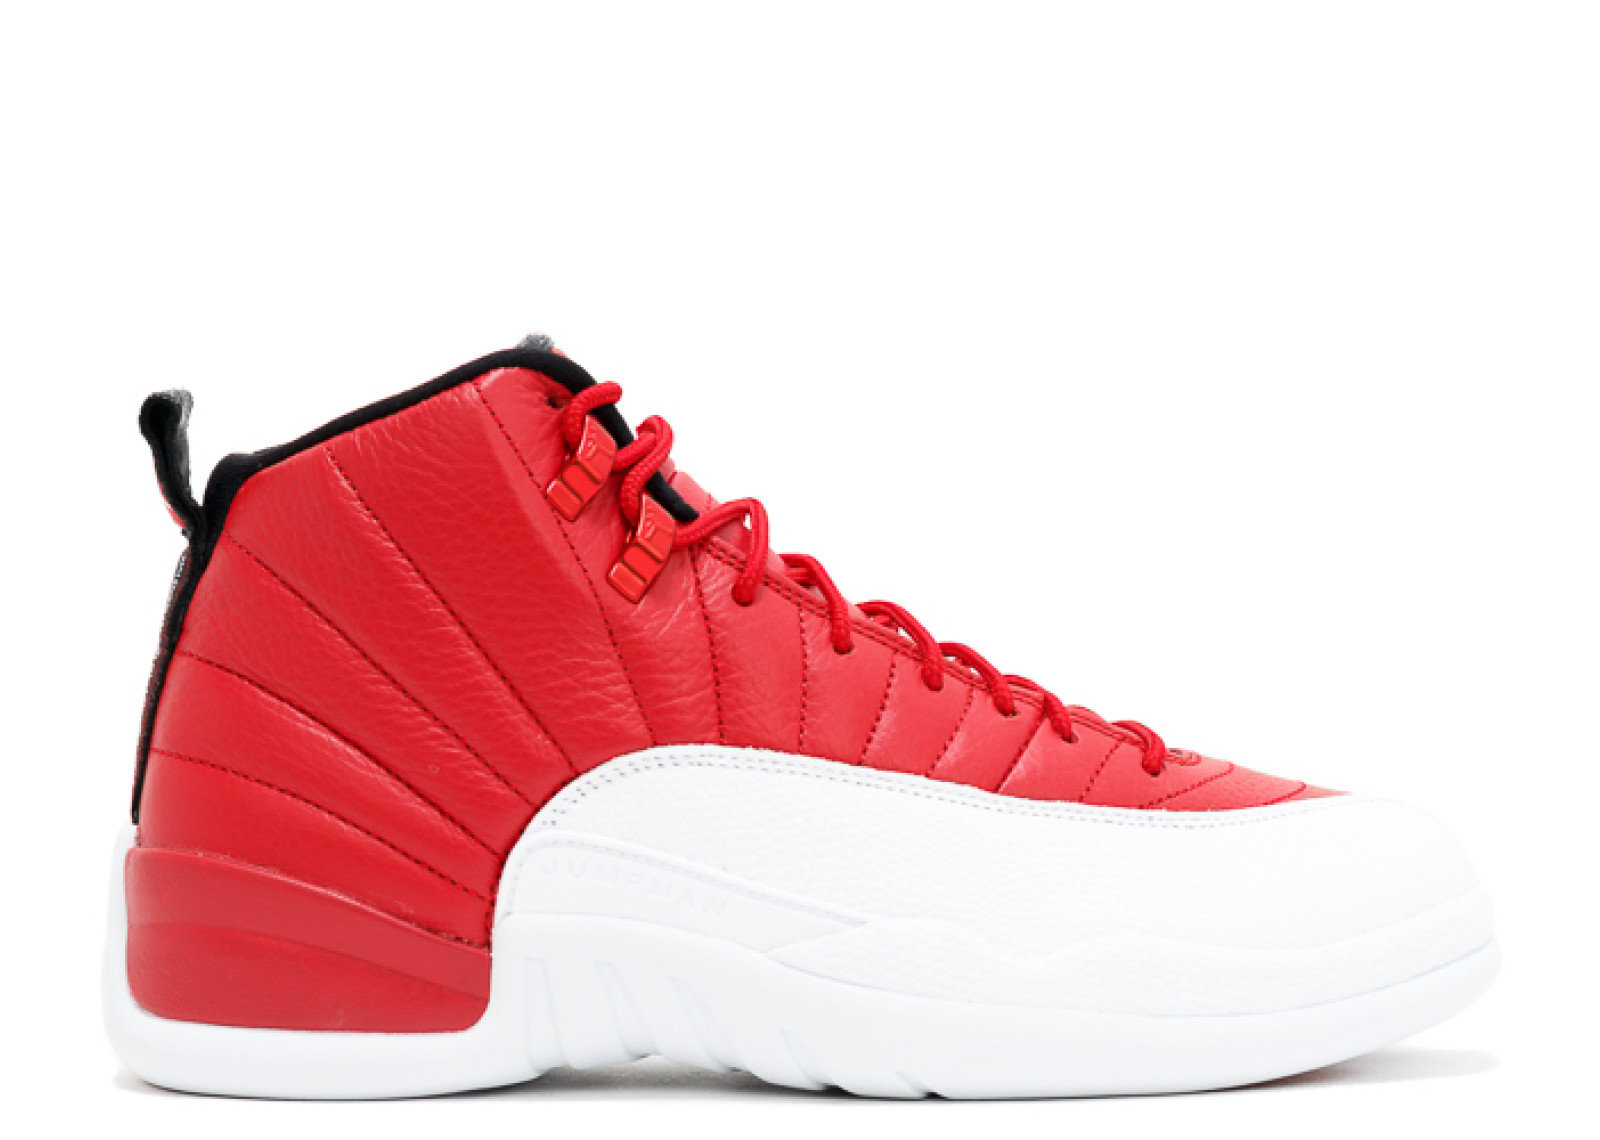 de1416f8637e8 Nike Air Jordan Retro 12 Gym Red Men